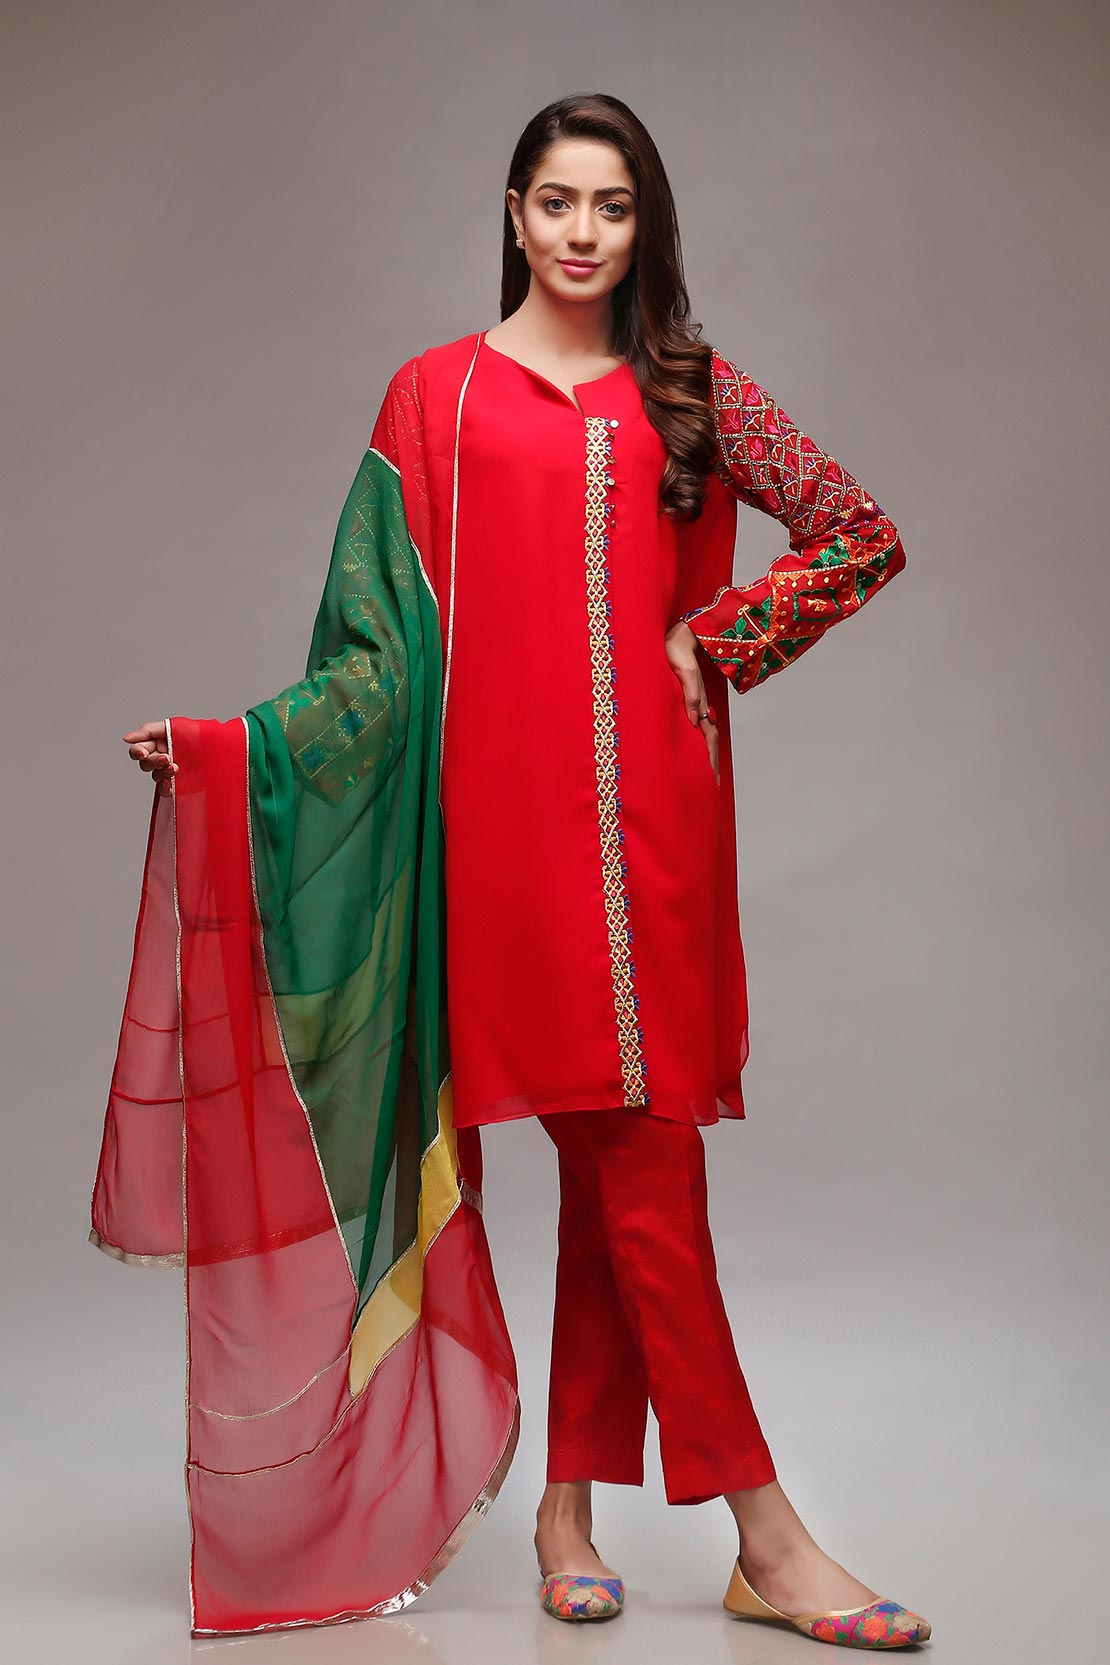 rang ja trendy eid colorful kurti dresses 20182019